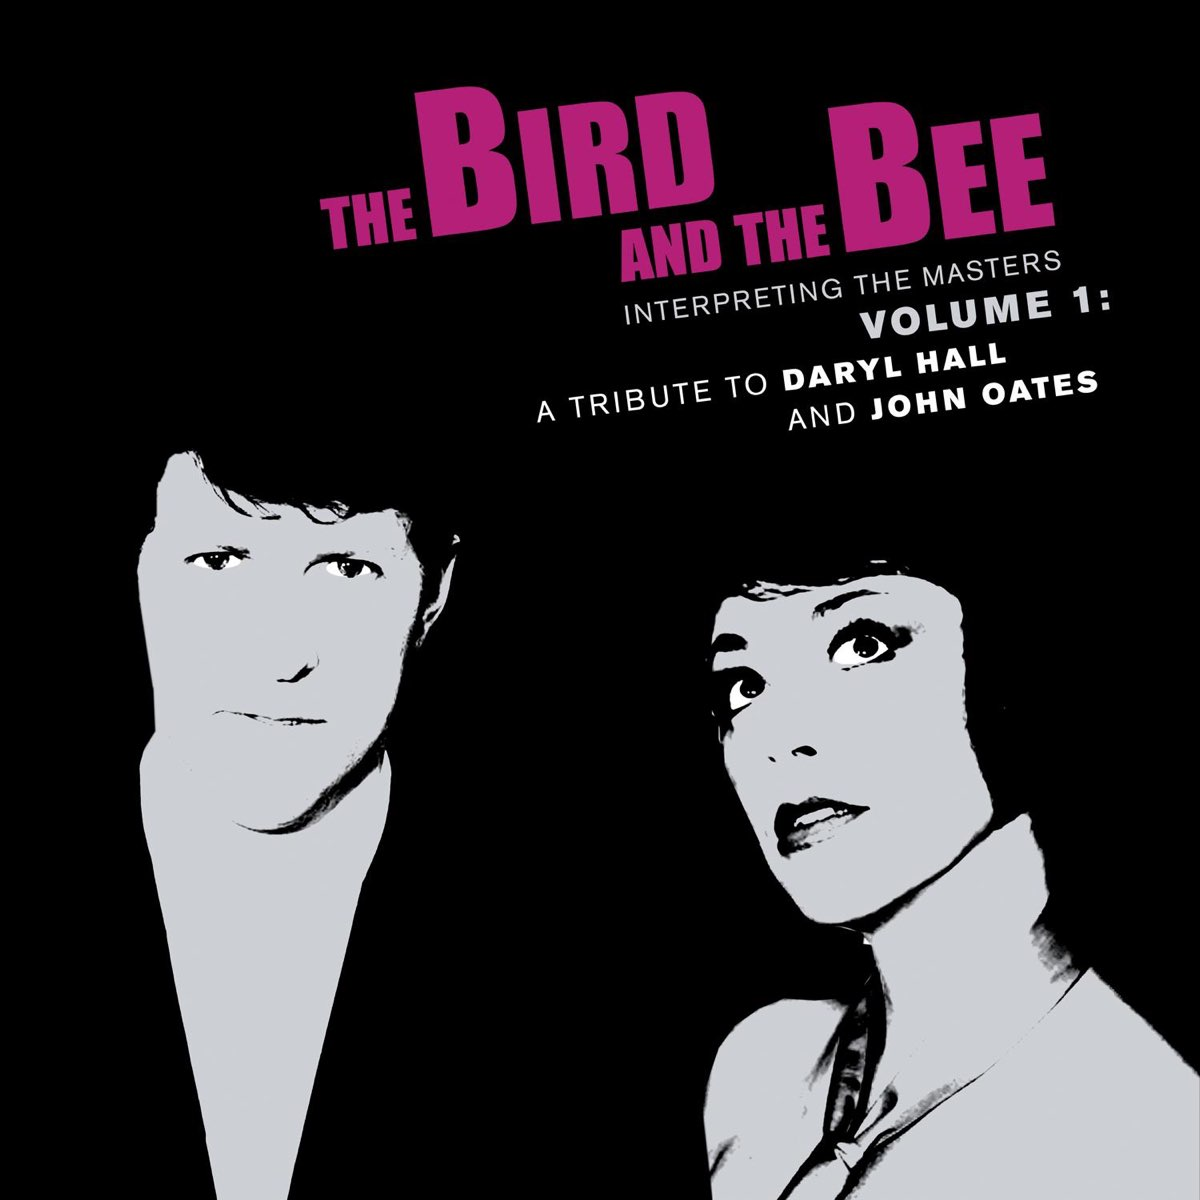 The Bird and the Bee, Interpreting the Masters Volume 1: A Tribute to Daryl Hall and John Oates